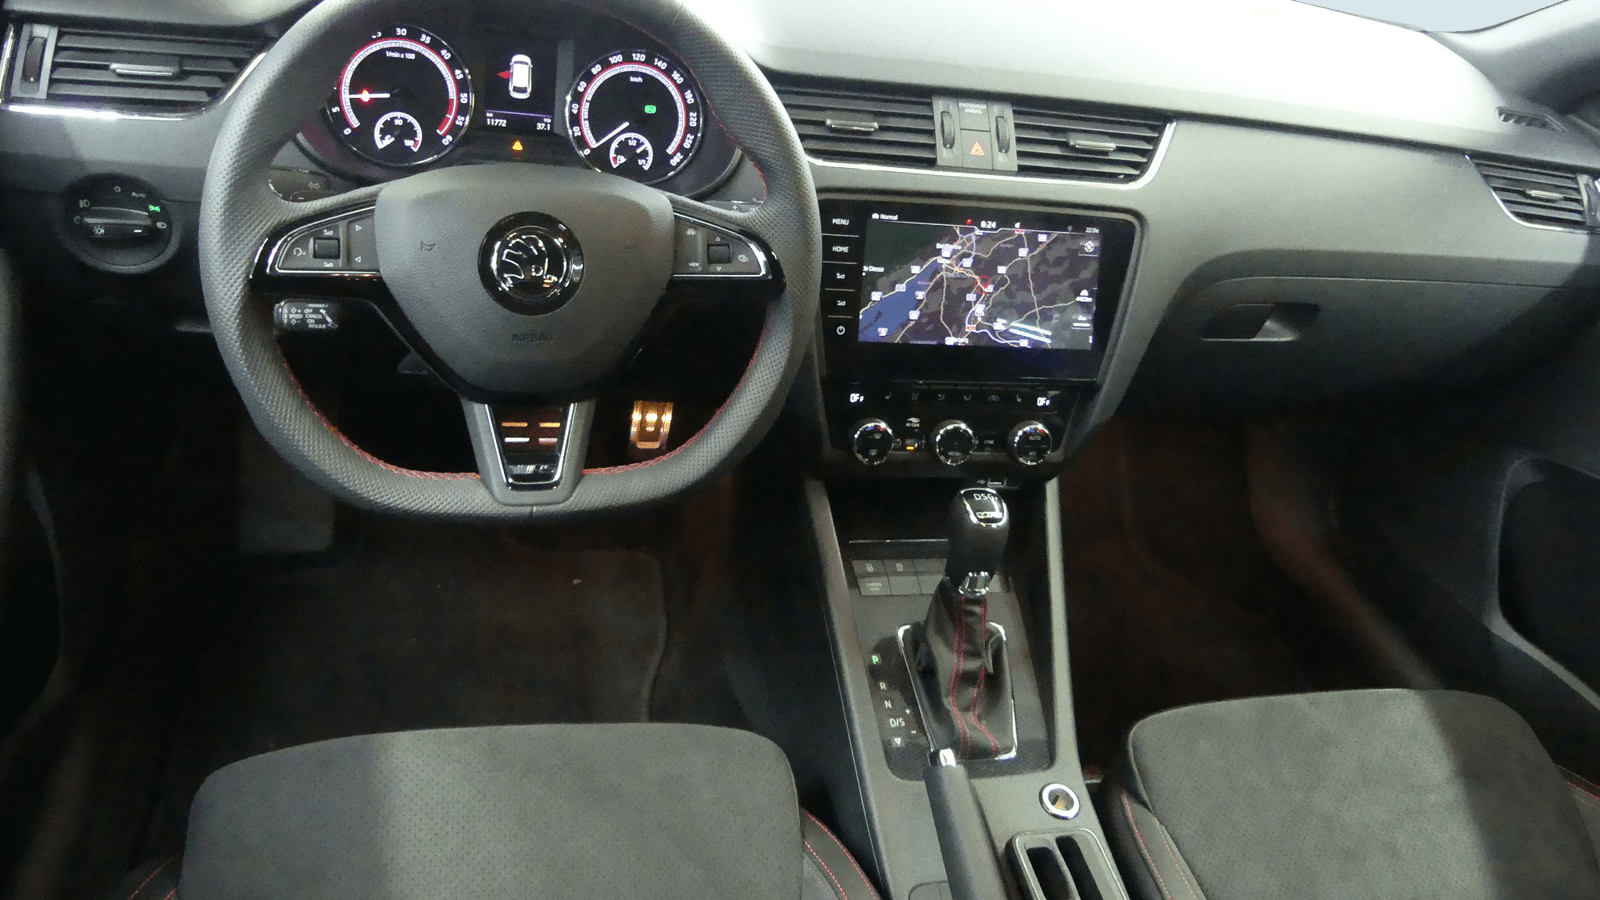 ŠKODA Octavia Combi RS White interior - Clyde car subscription